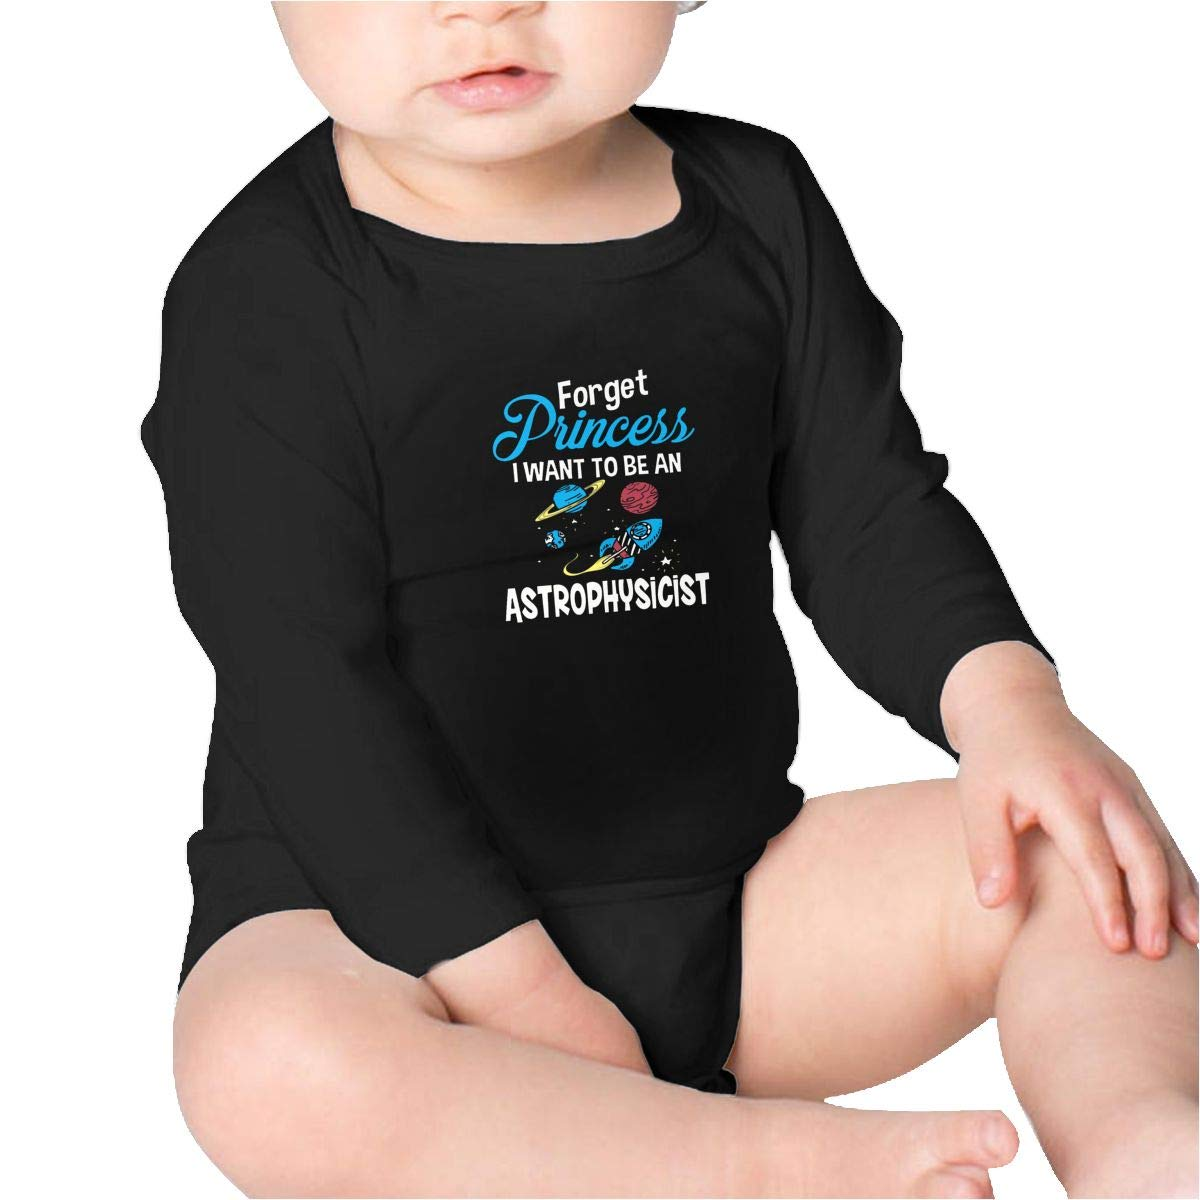 Forget Princess I Want to Be an Astrophysicist Kids Cotton,Long Sleeve Baby Romper